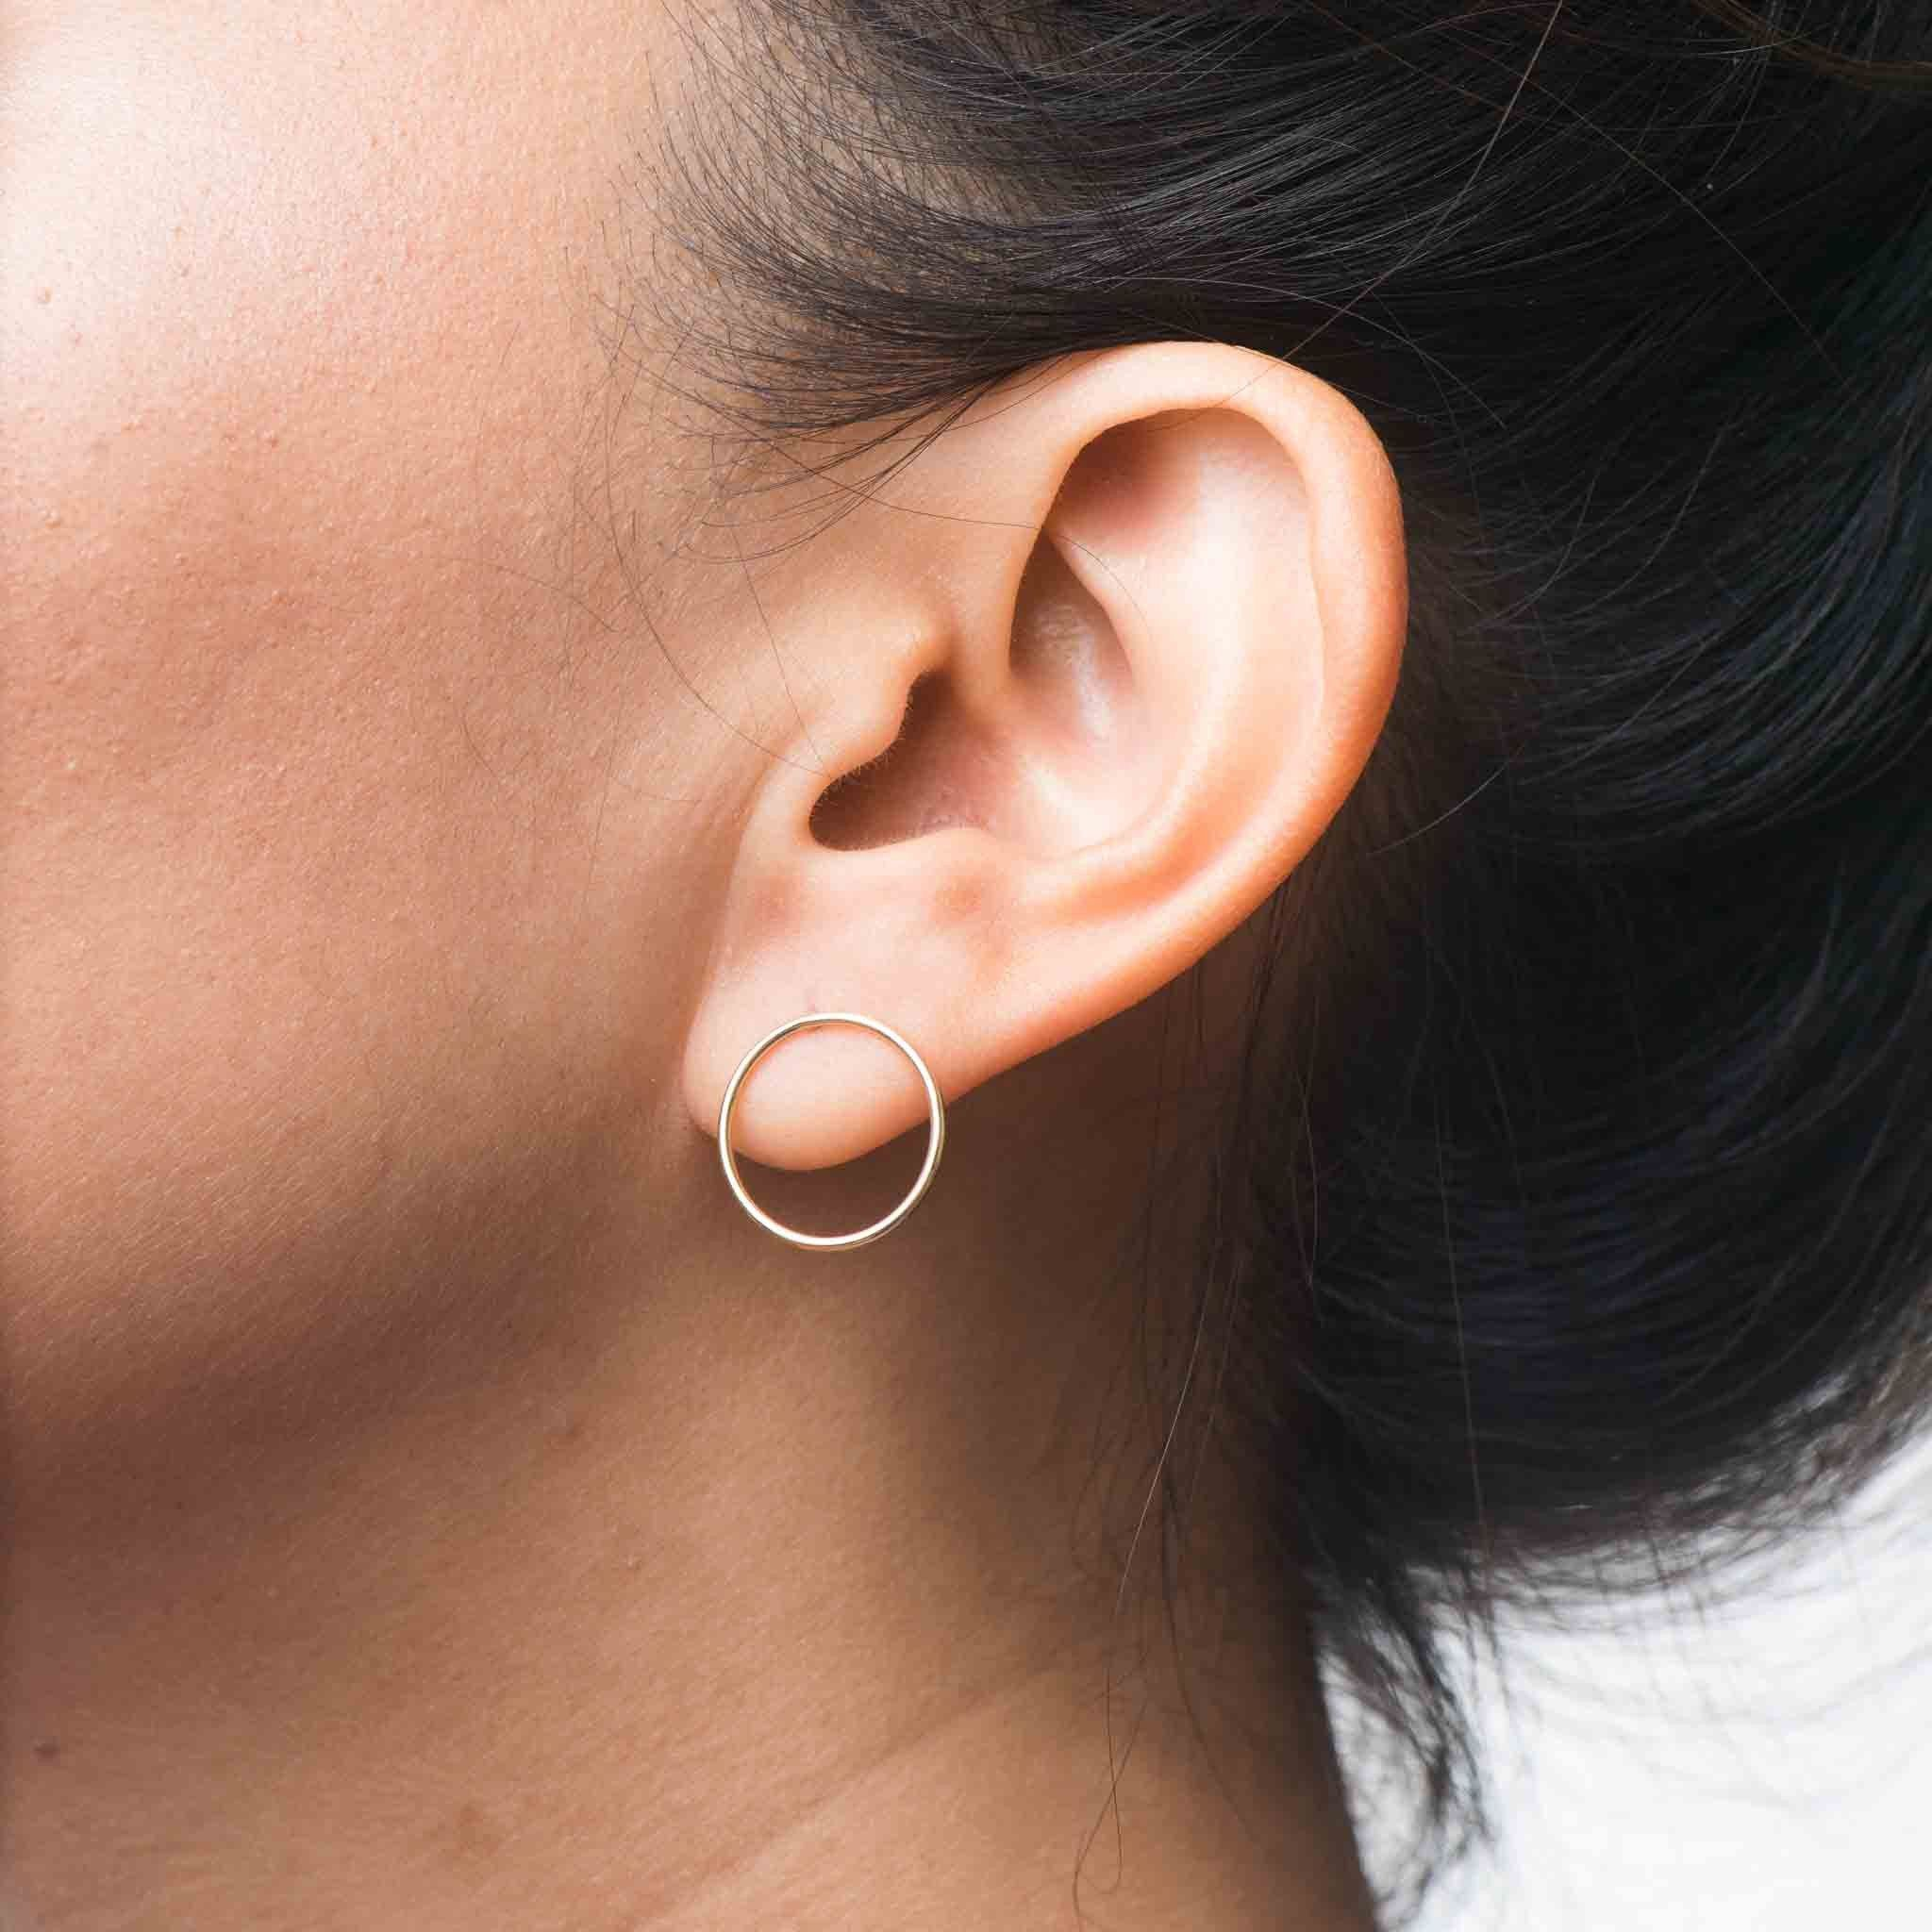 Best nose piercing jewelry  k solid gold eclipse earrings  crafty  Pinterest  Solid gold